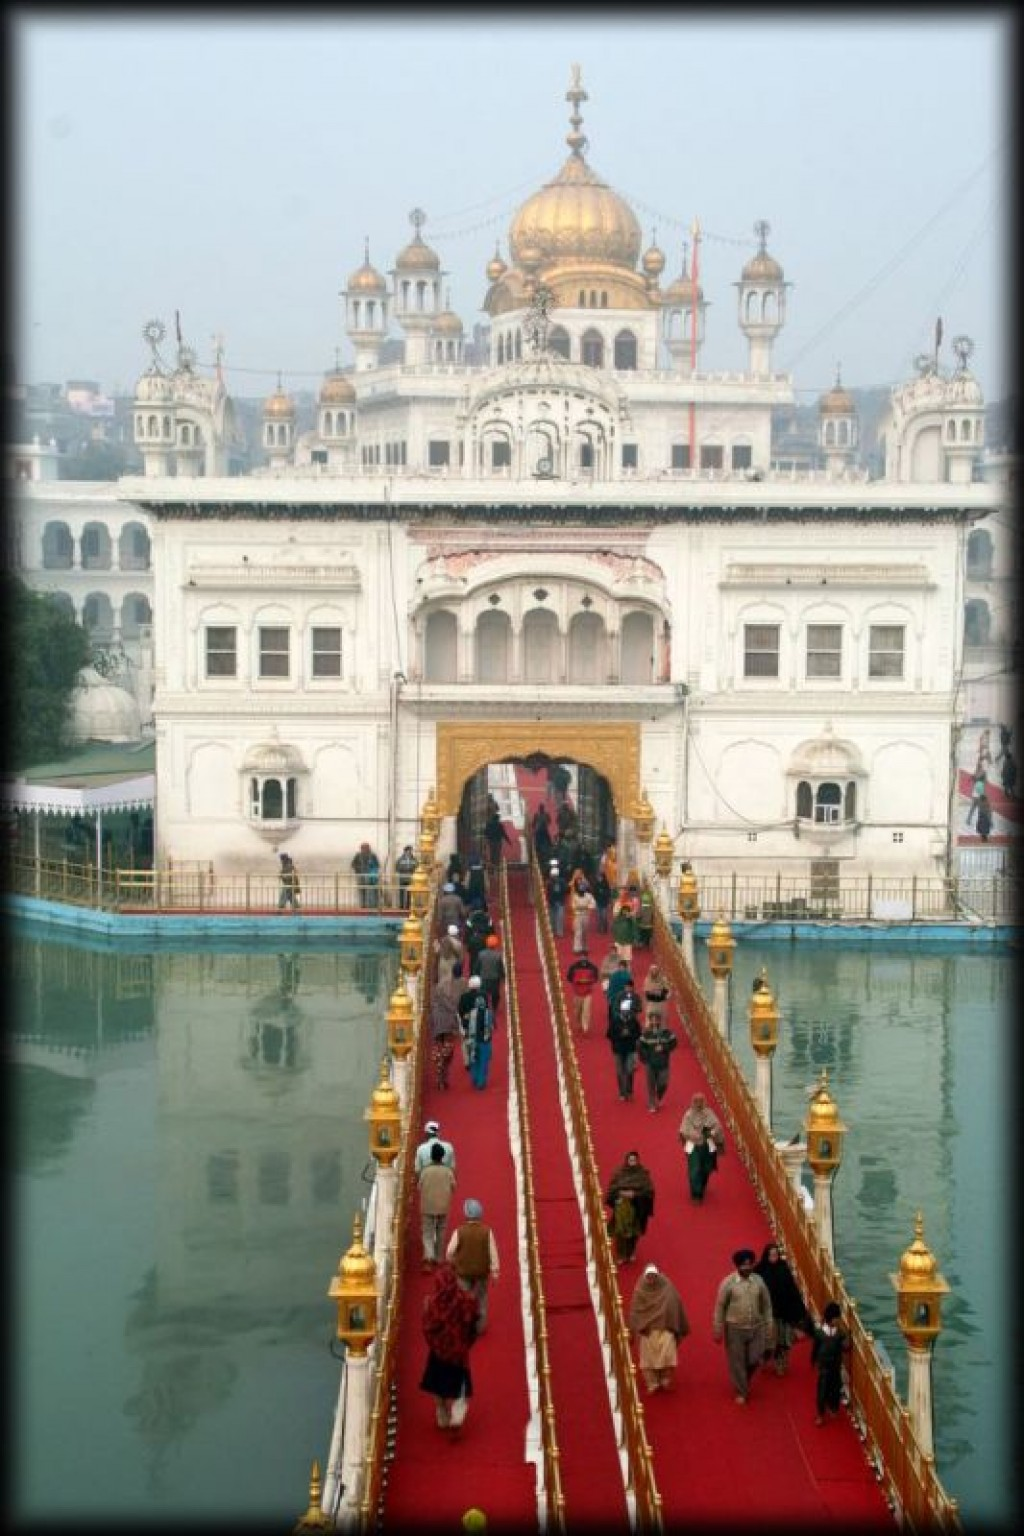 The Gurus' bridge to the Hari Mandir Sahib (or Darbar Sahib).